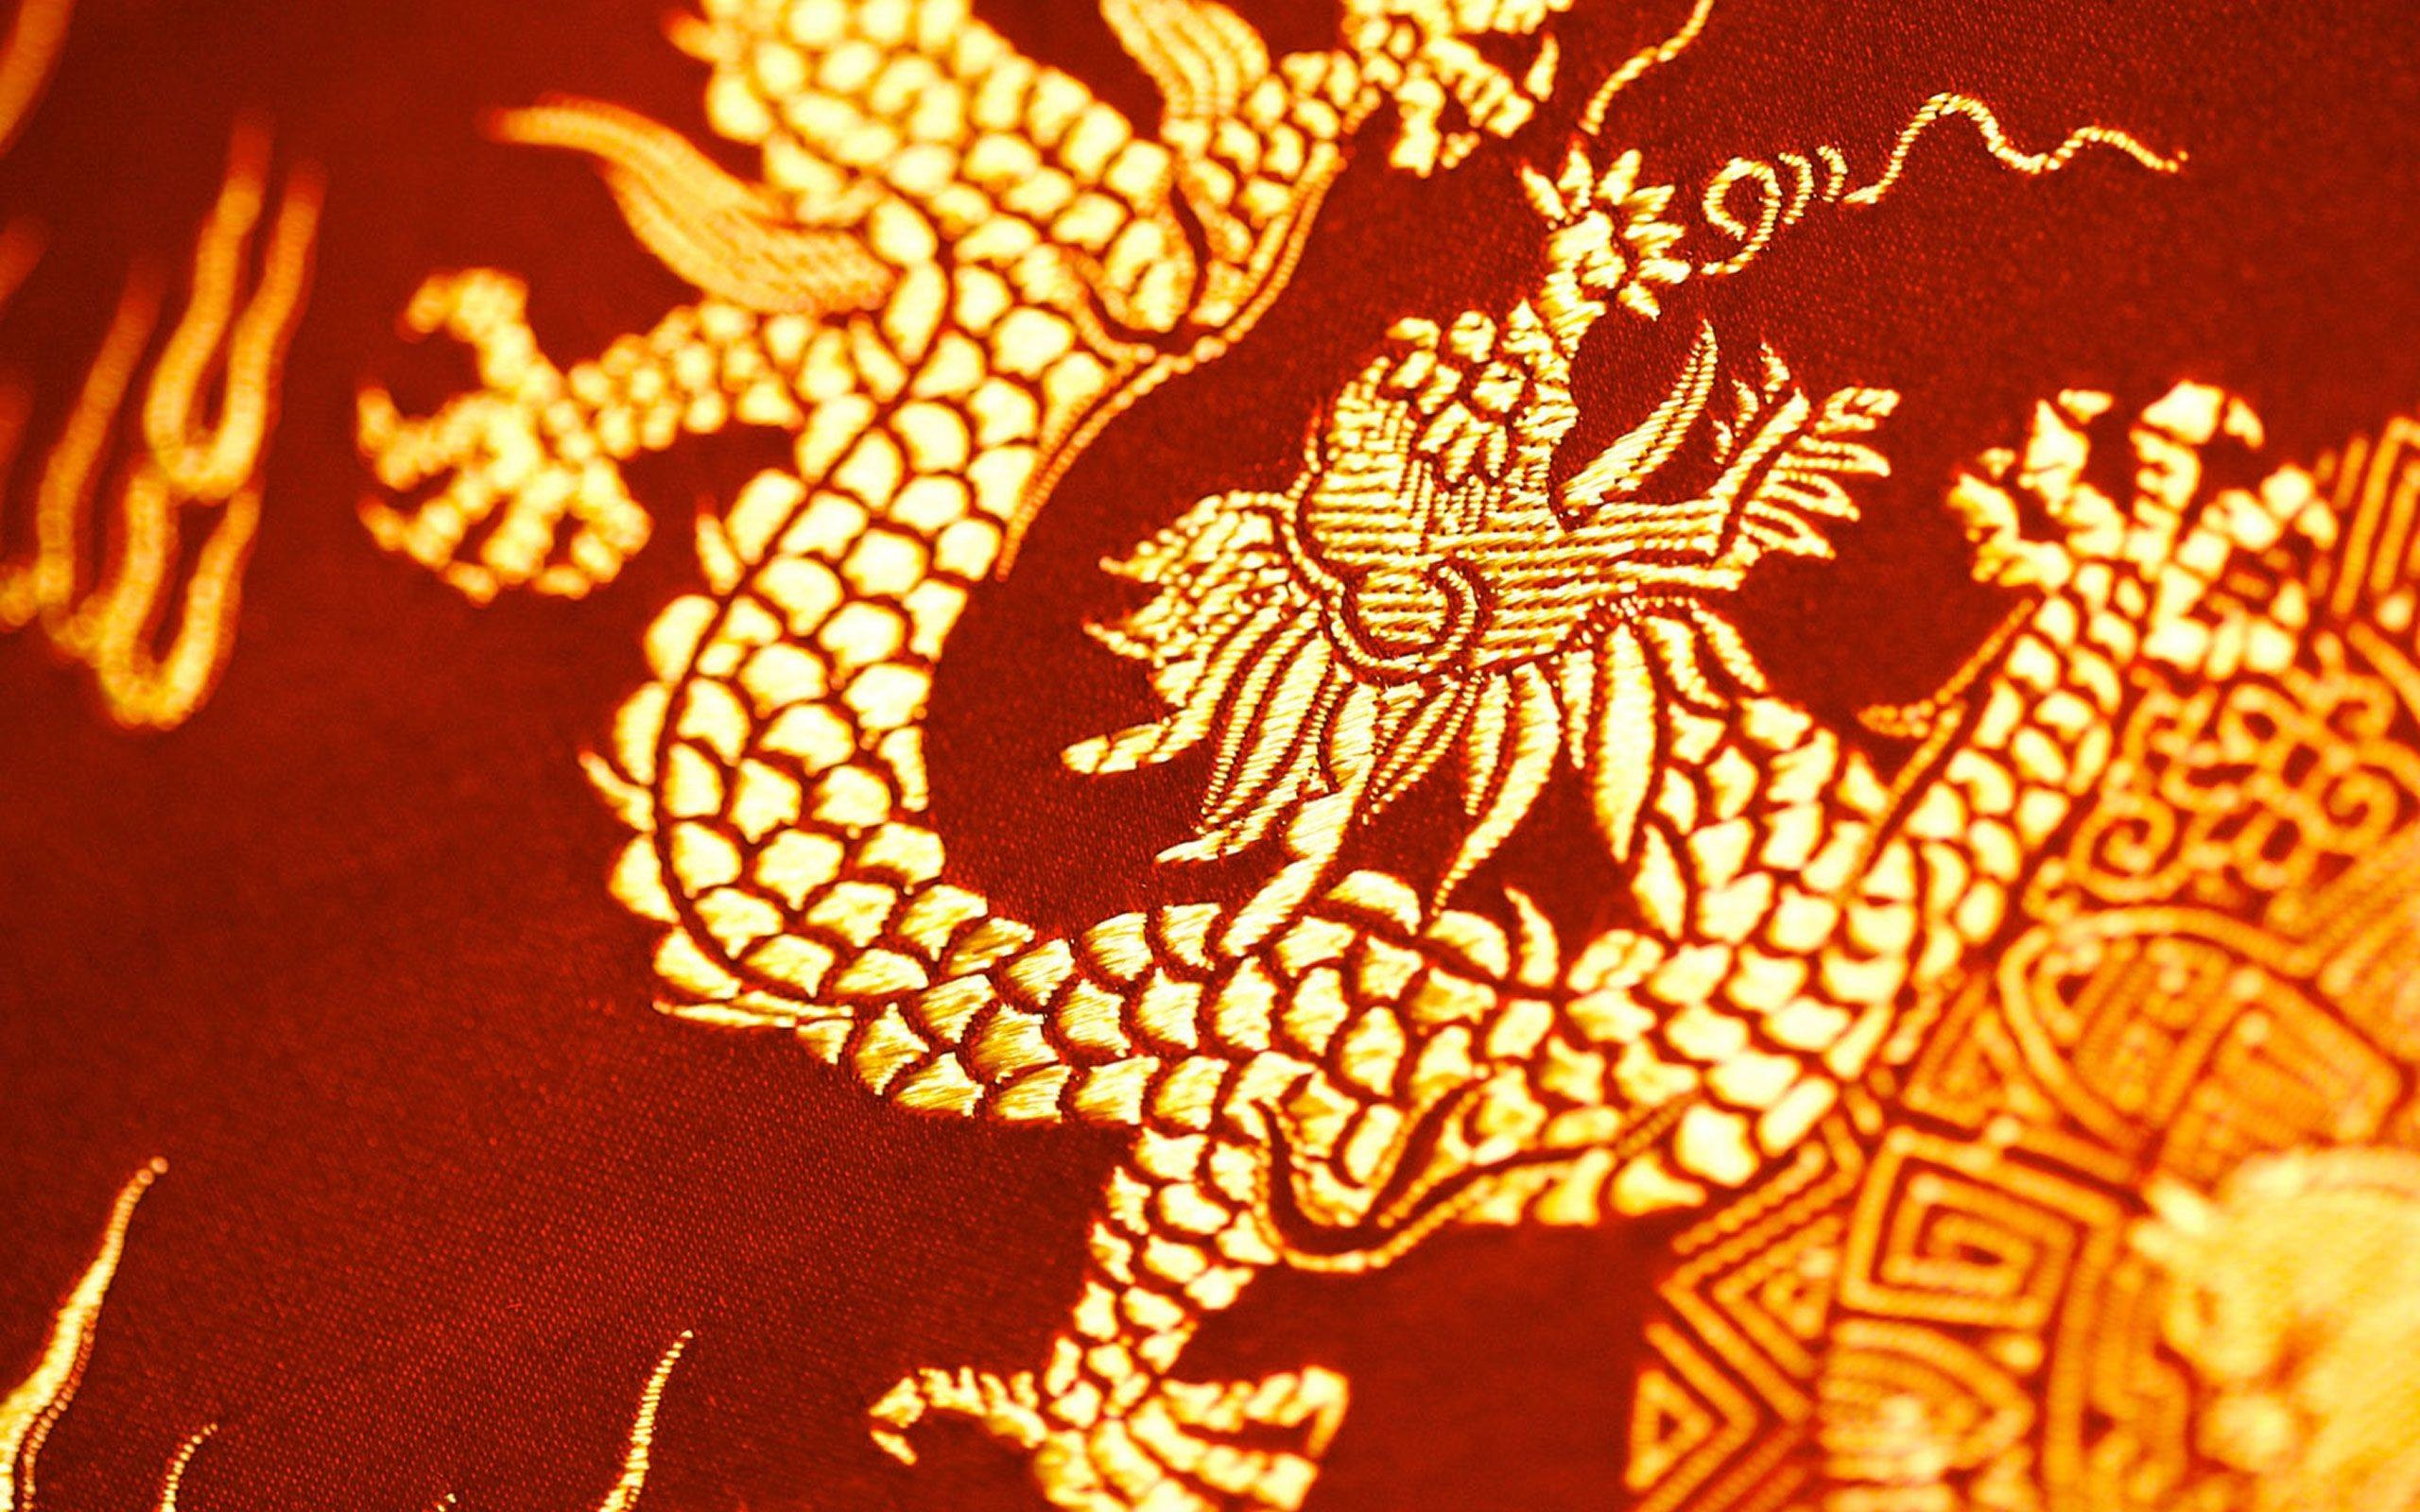 2560x1600 The exquisite embroidery of the Chinese Wind 6 | Wallpapers Design